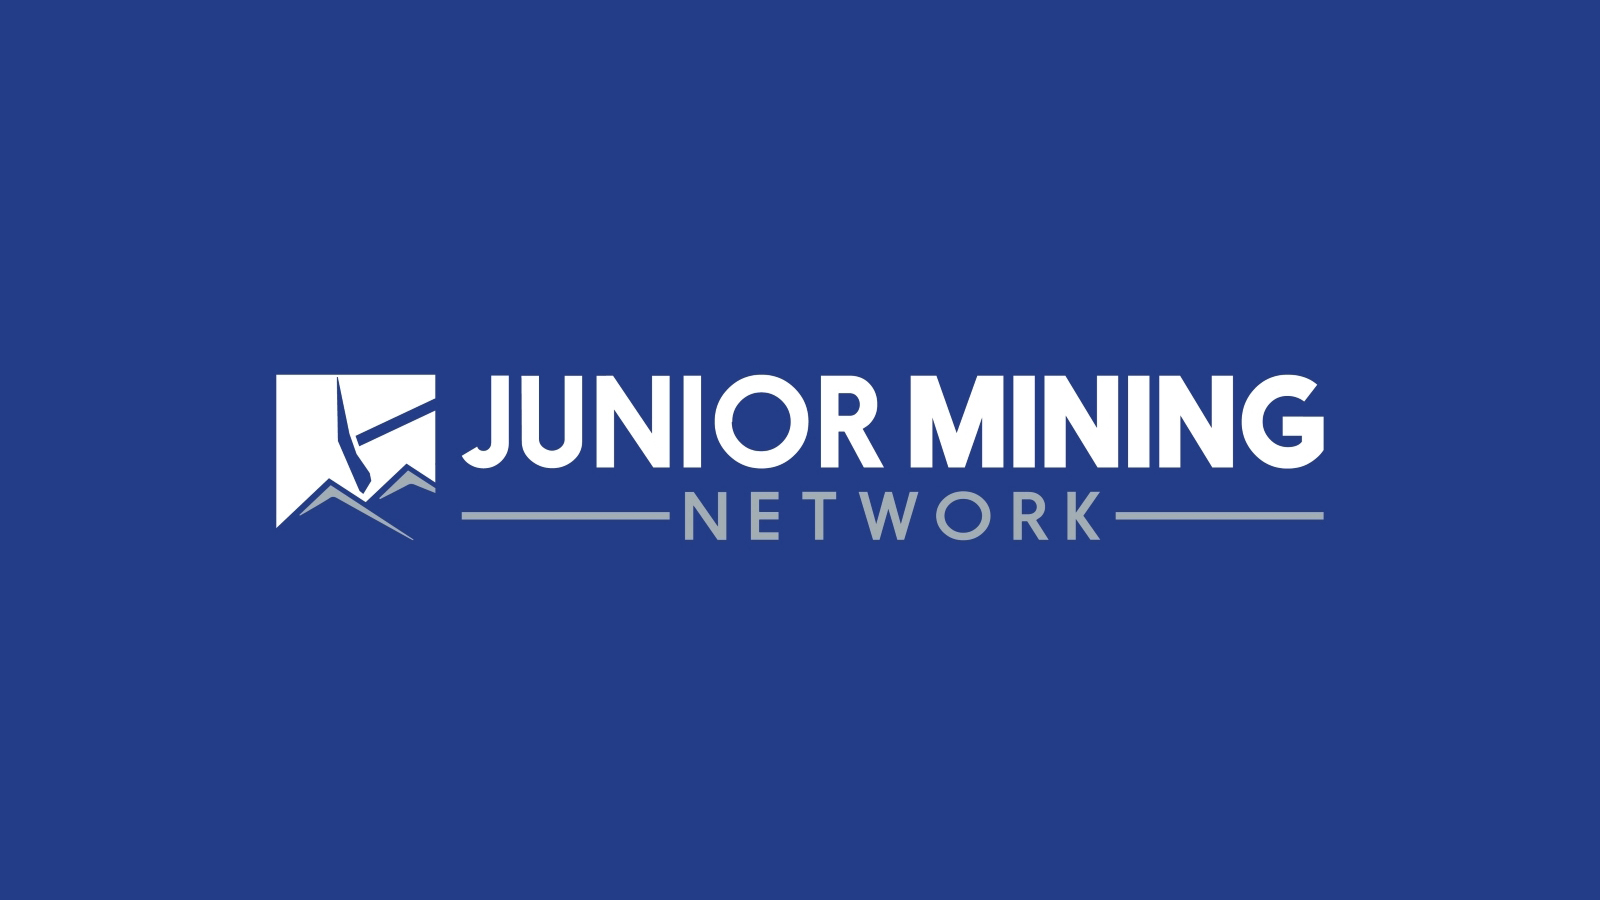 Cannot view this image? Visit: https://www.juniorminingnetwork.com/images/news/newsfile/32201_dni4.jpg